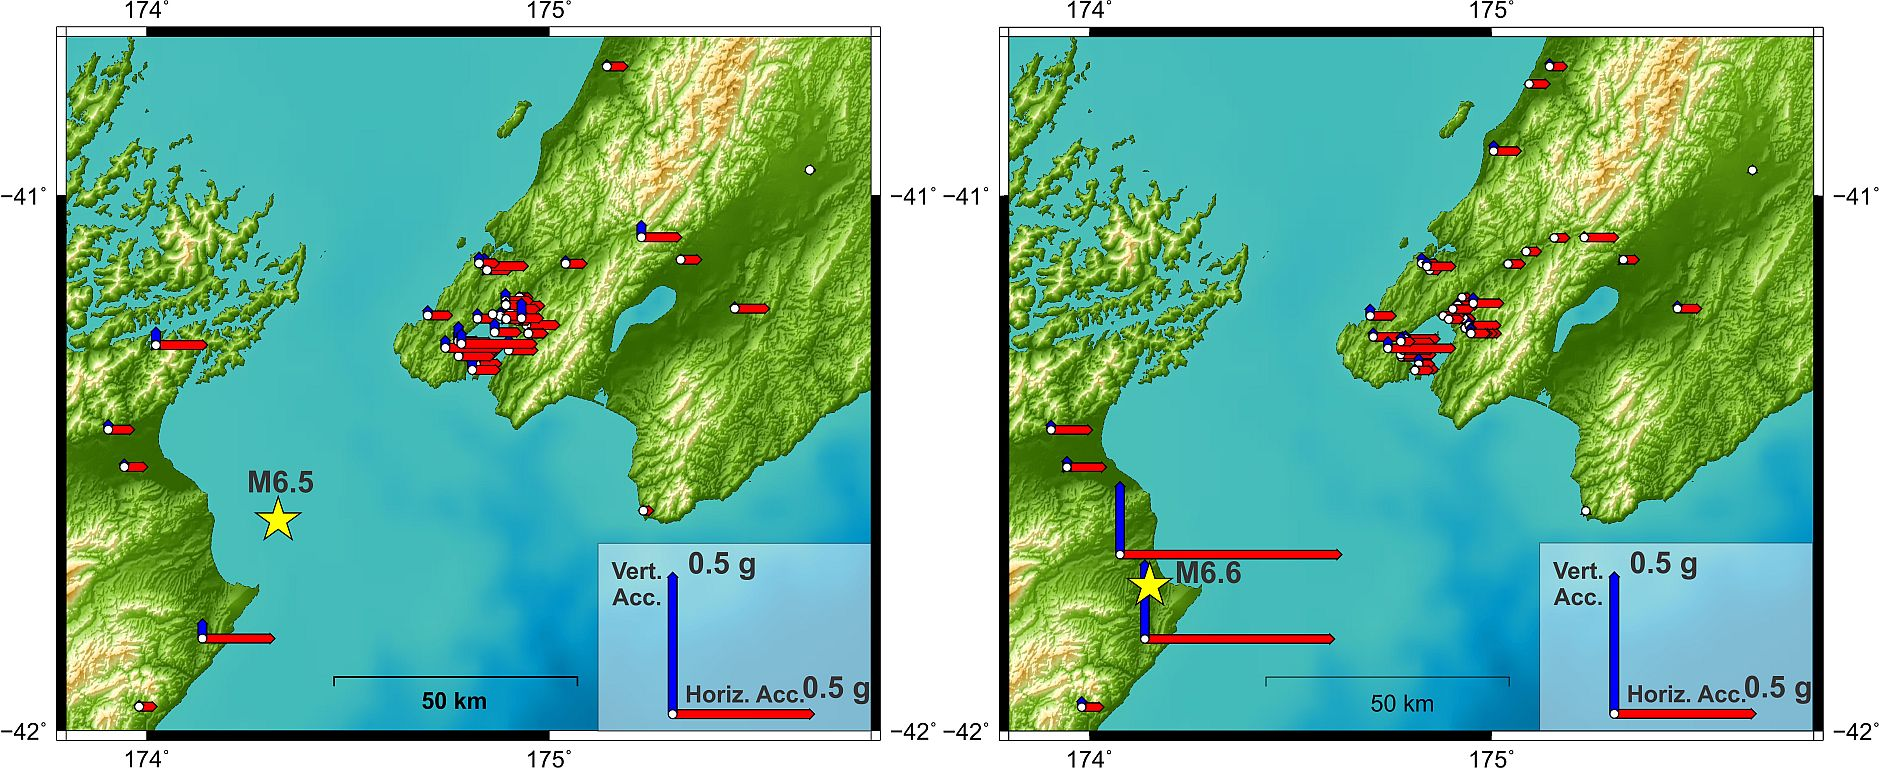 A comparison of ground shaking between the Cook Strait and Lake Grassmere earthquakes. Much higher levels evident in Marlborough due to proximity to the epicentre.